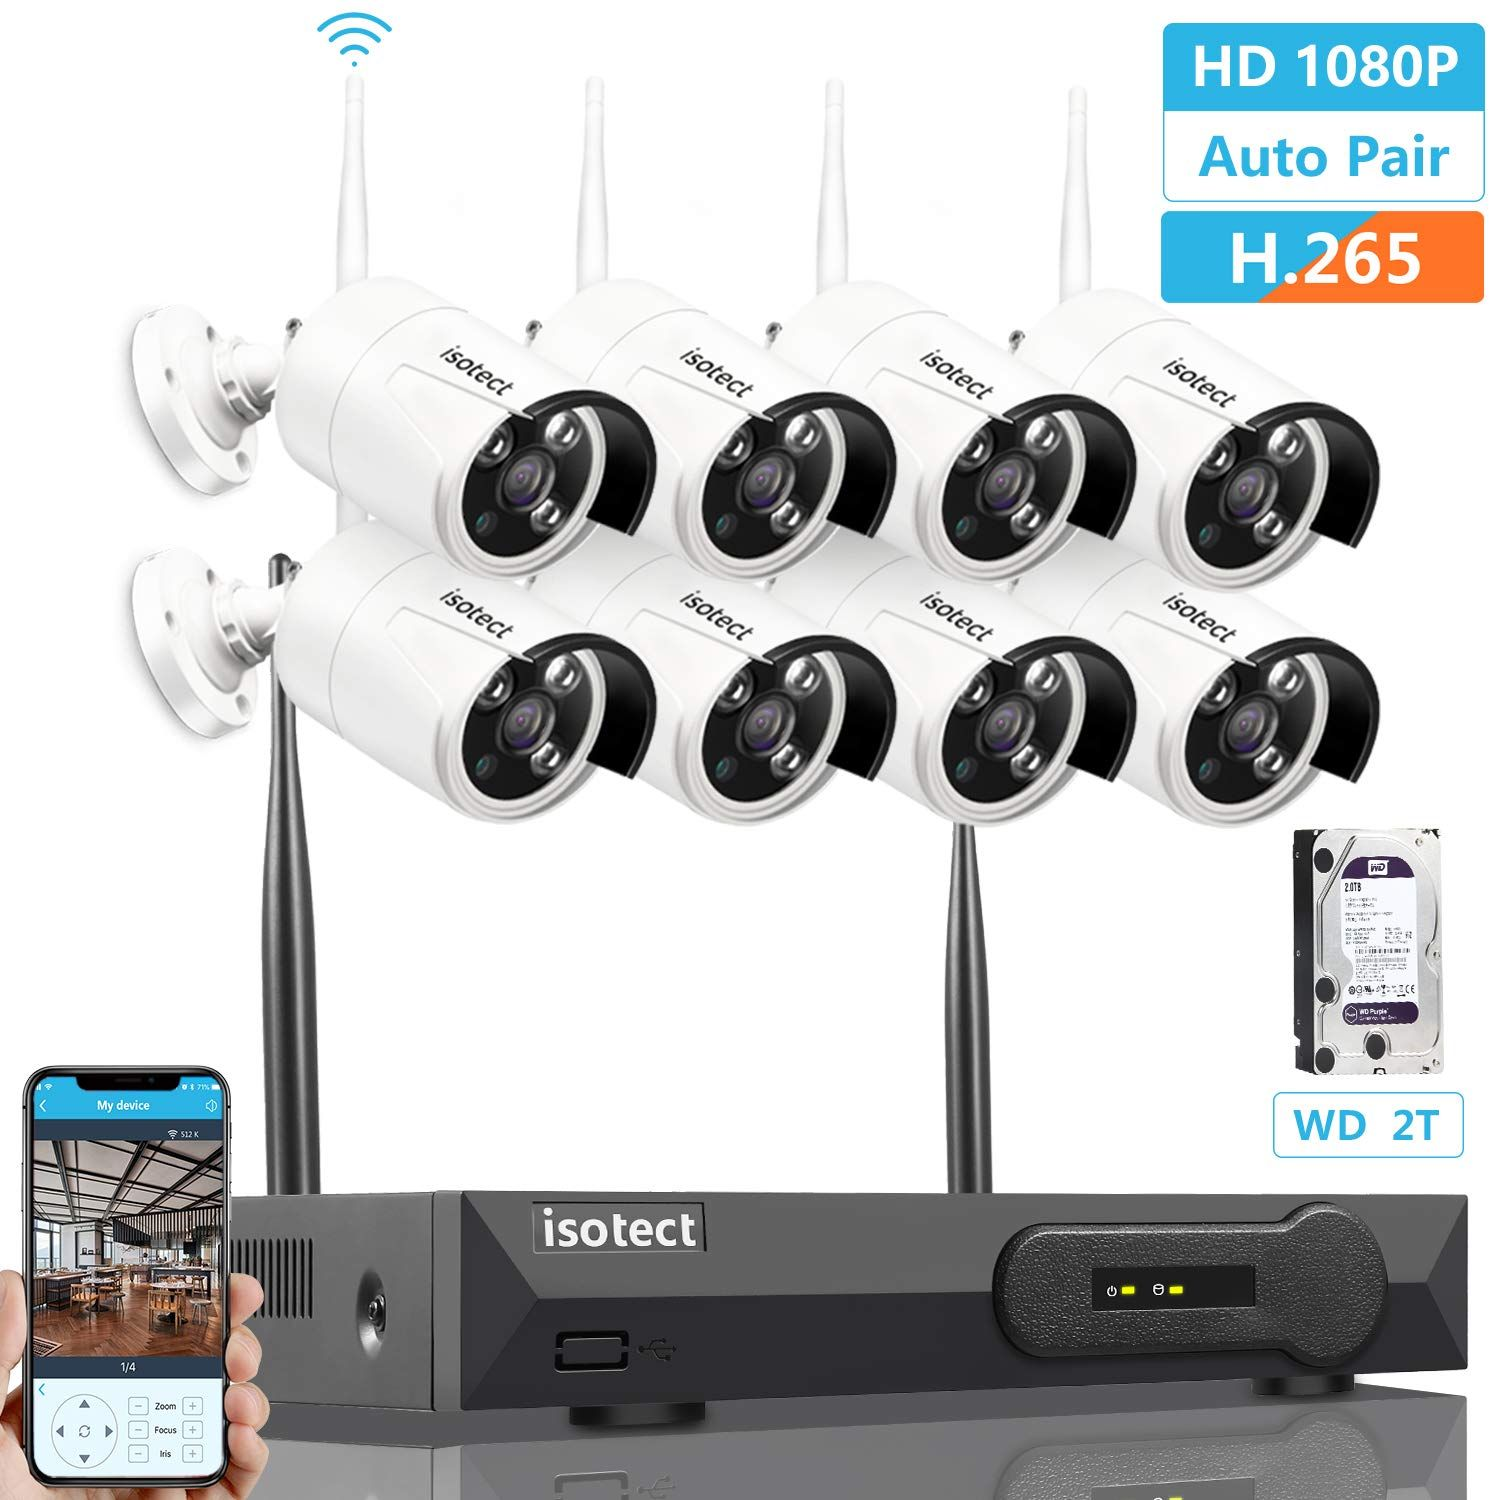 Wireless Security Camera System Isotect 8ch Full Hd 1080p Video Security Wireless Security Camera System Wireless Home Security Systems Video Security System